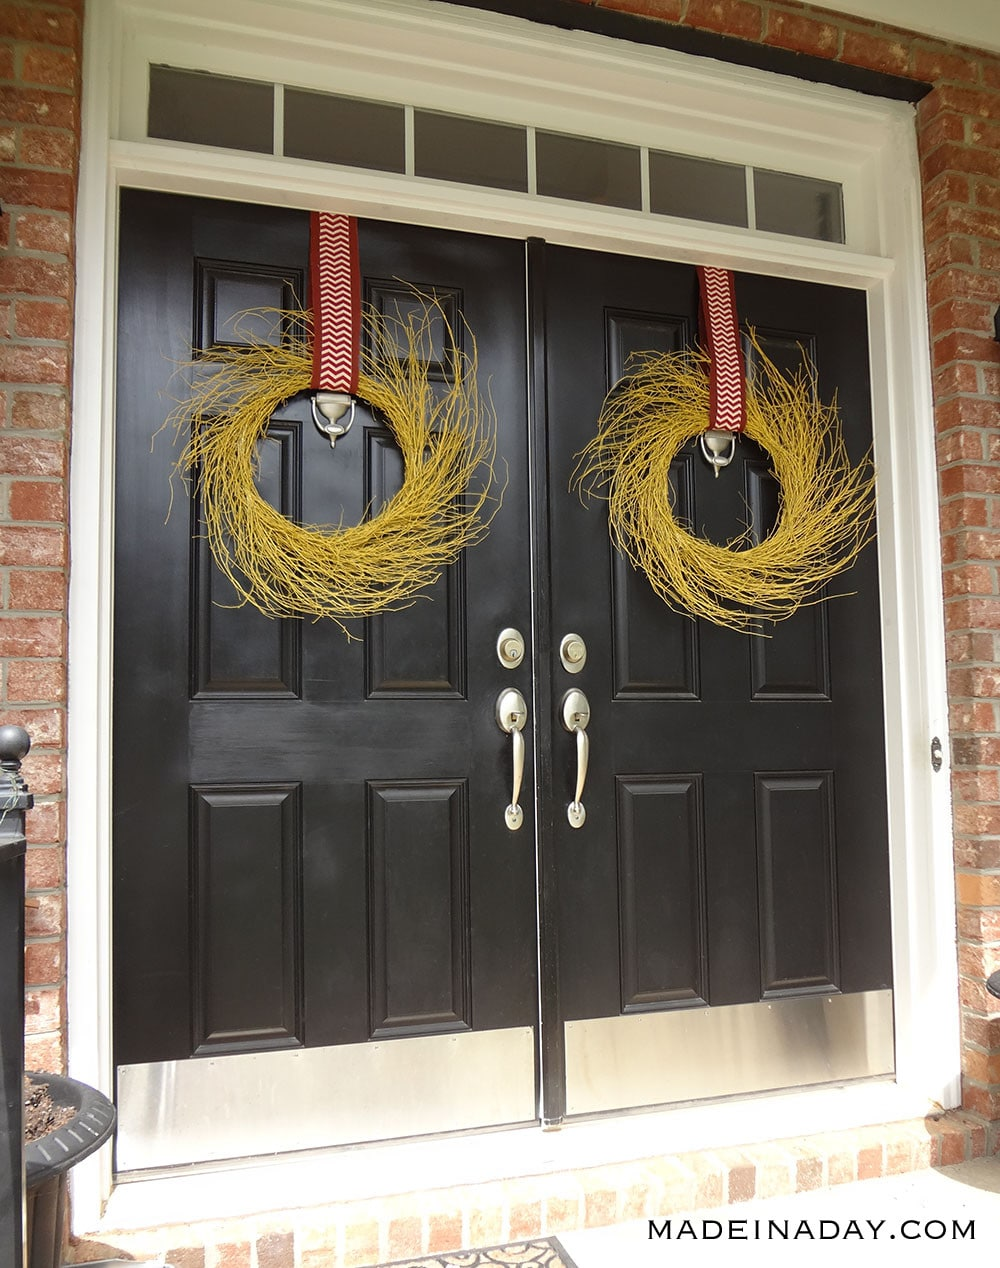 Yellow Wreaths for Fall, Fall Gold Wreath, Gold Wispy Wreath